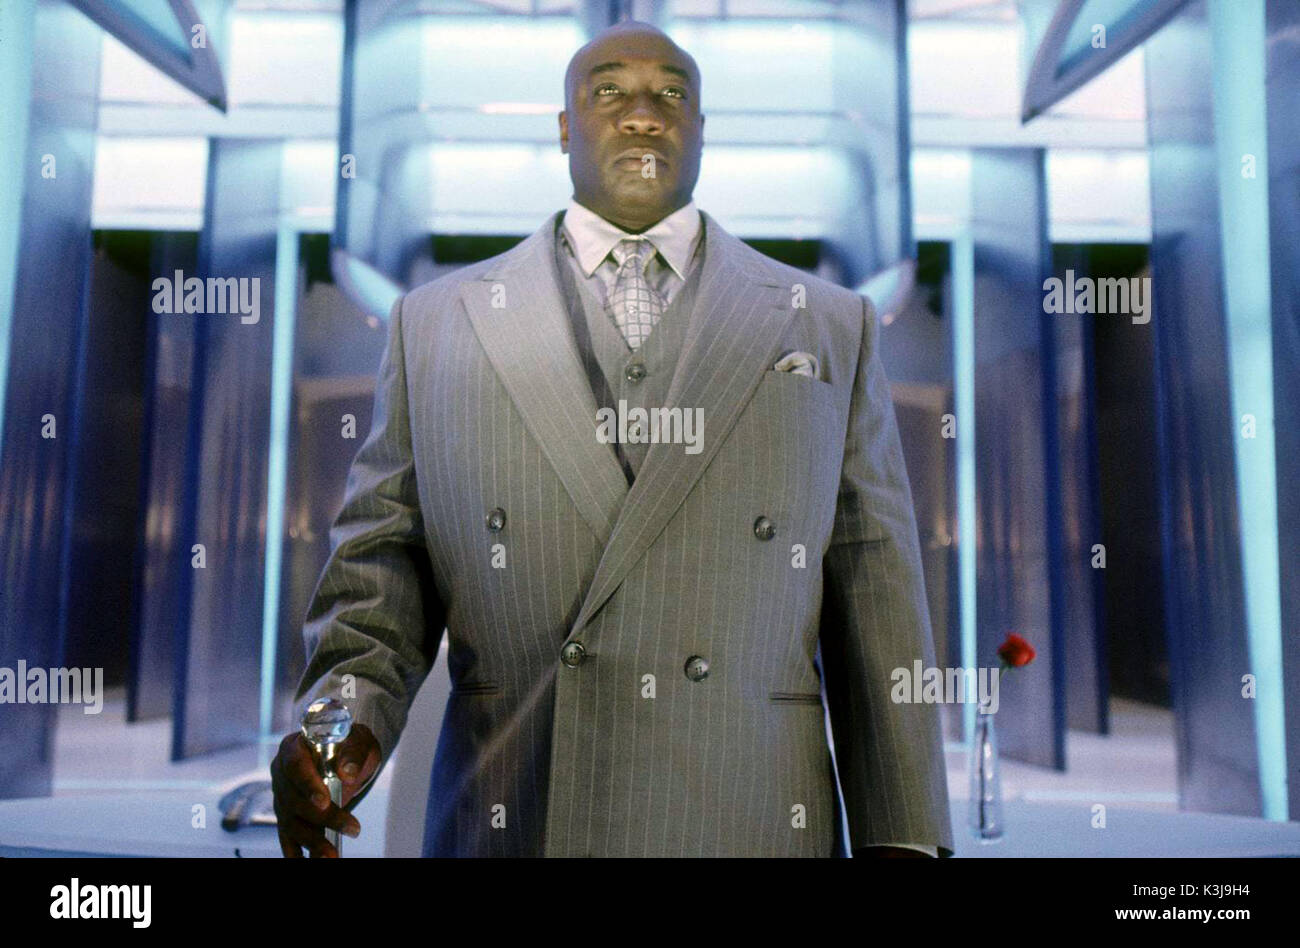 Kingpin Stock Photos & Kingpin Stock Images - Alamy